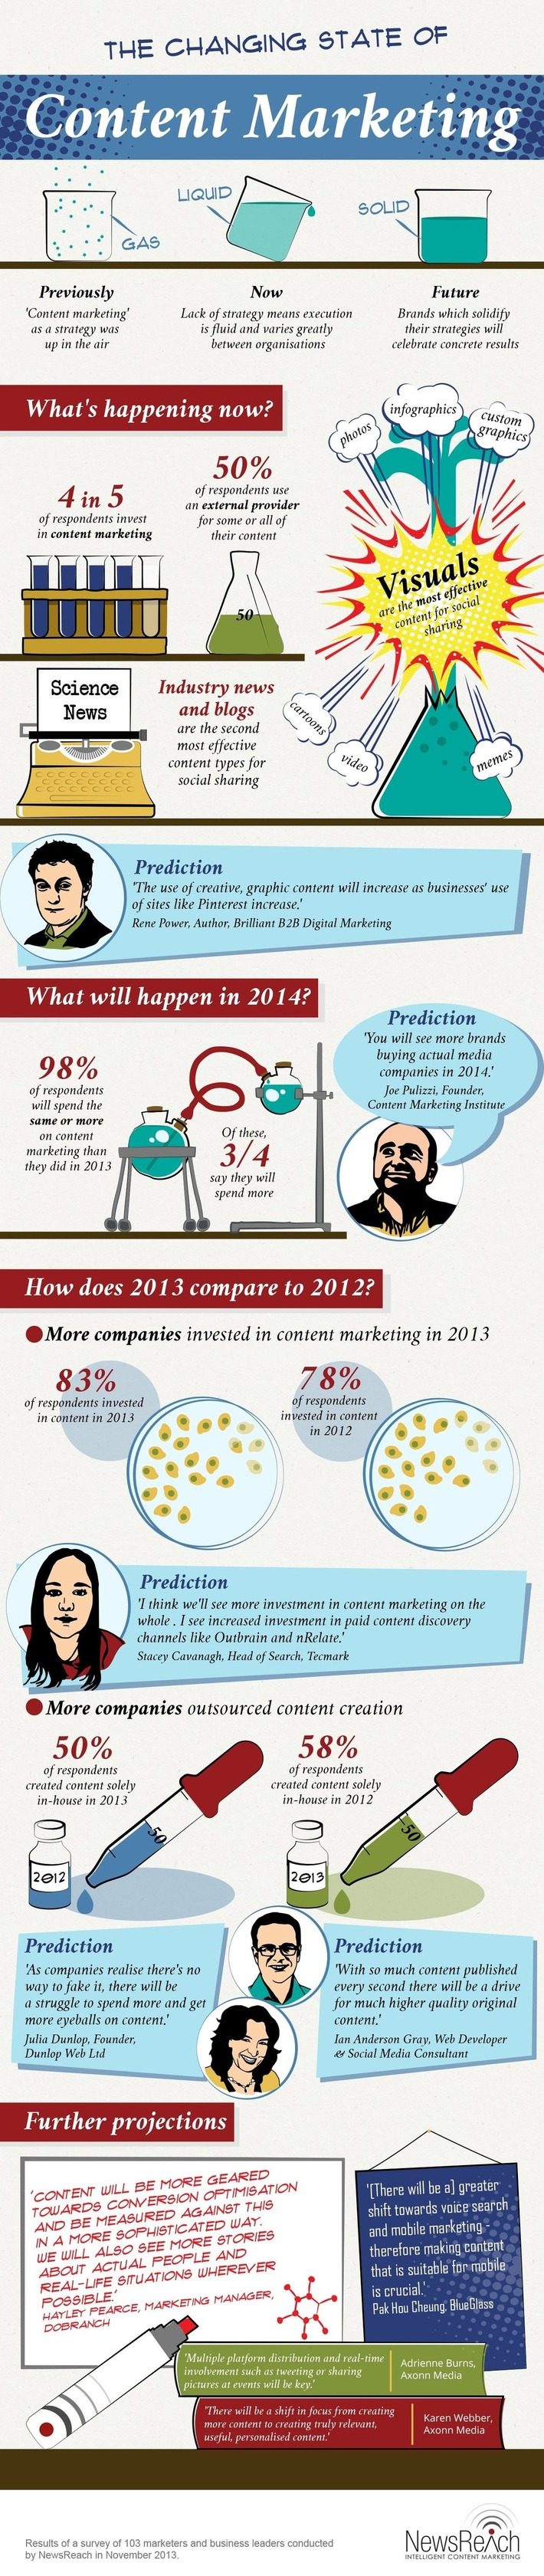 The Changing State of Content Marketing [INFOGRAPHIC] | #SeriouslySocial | A Marketing Mix | Scoop.it